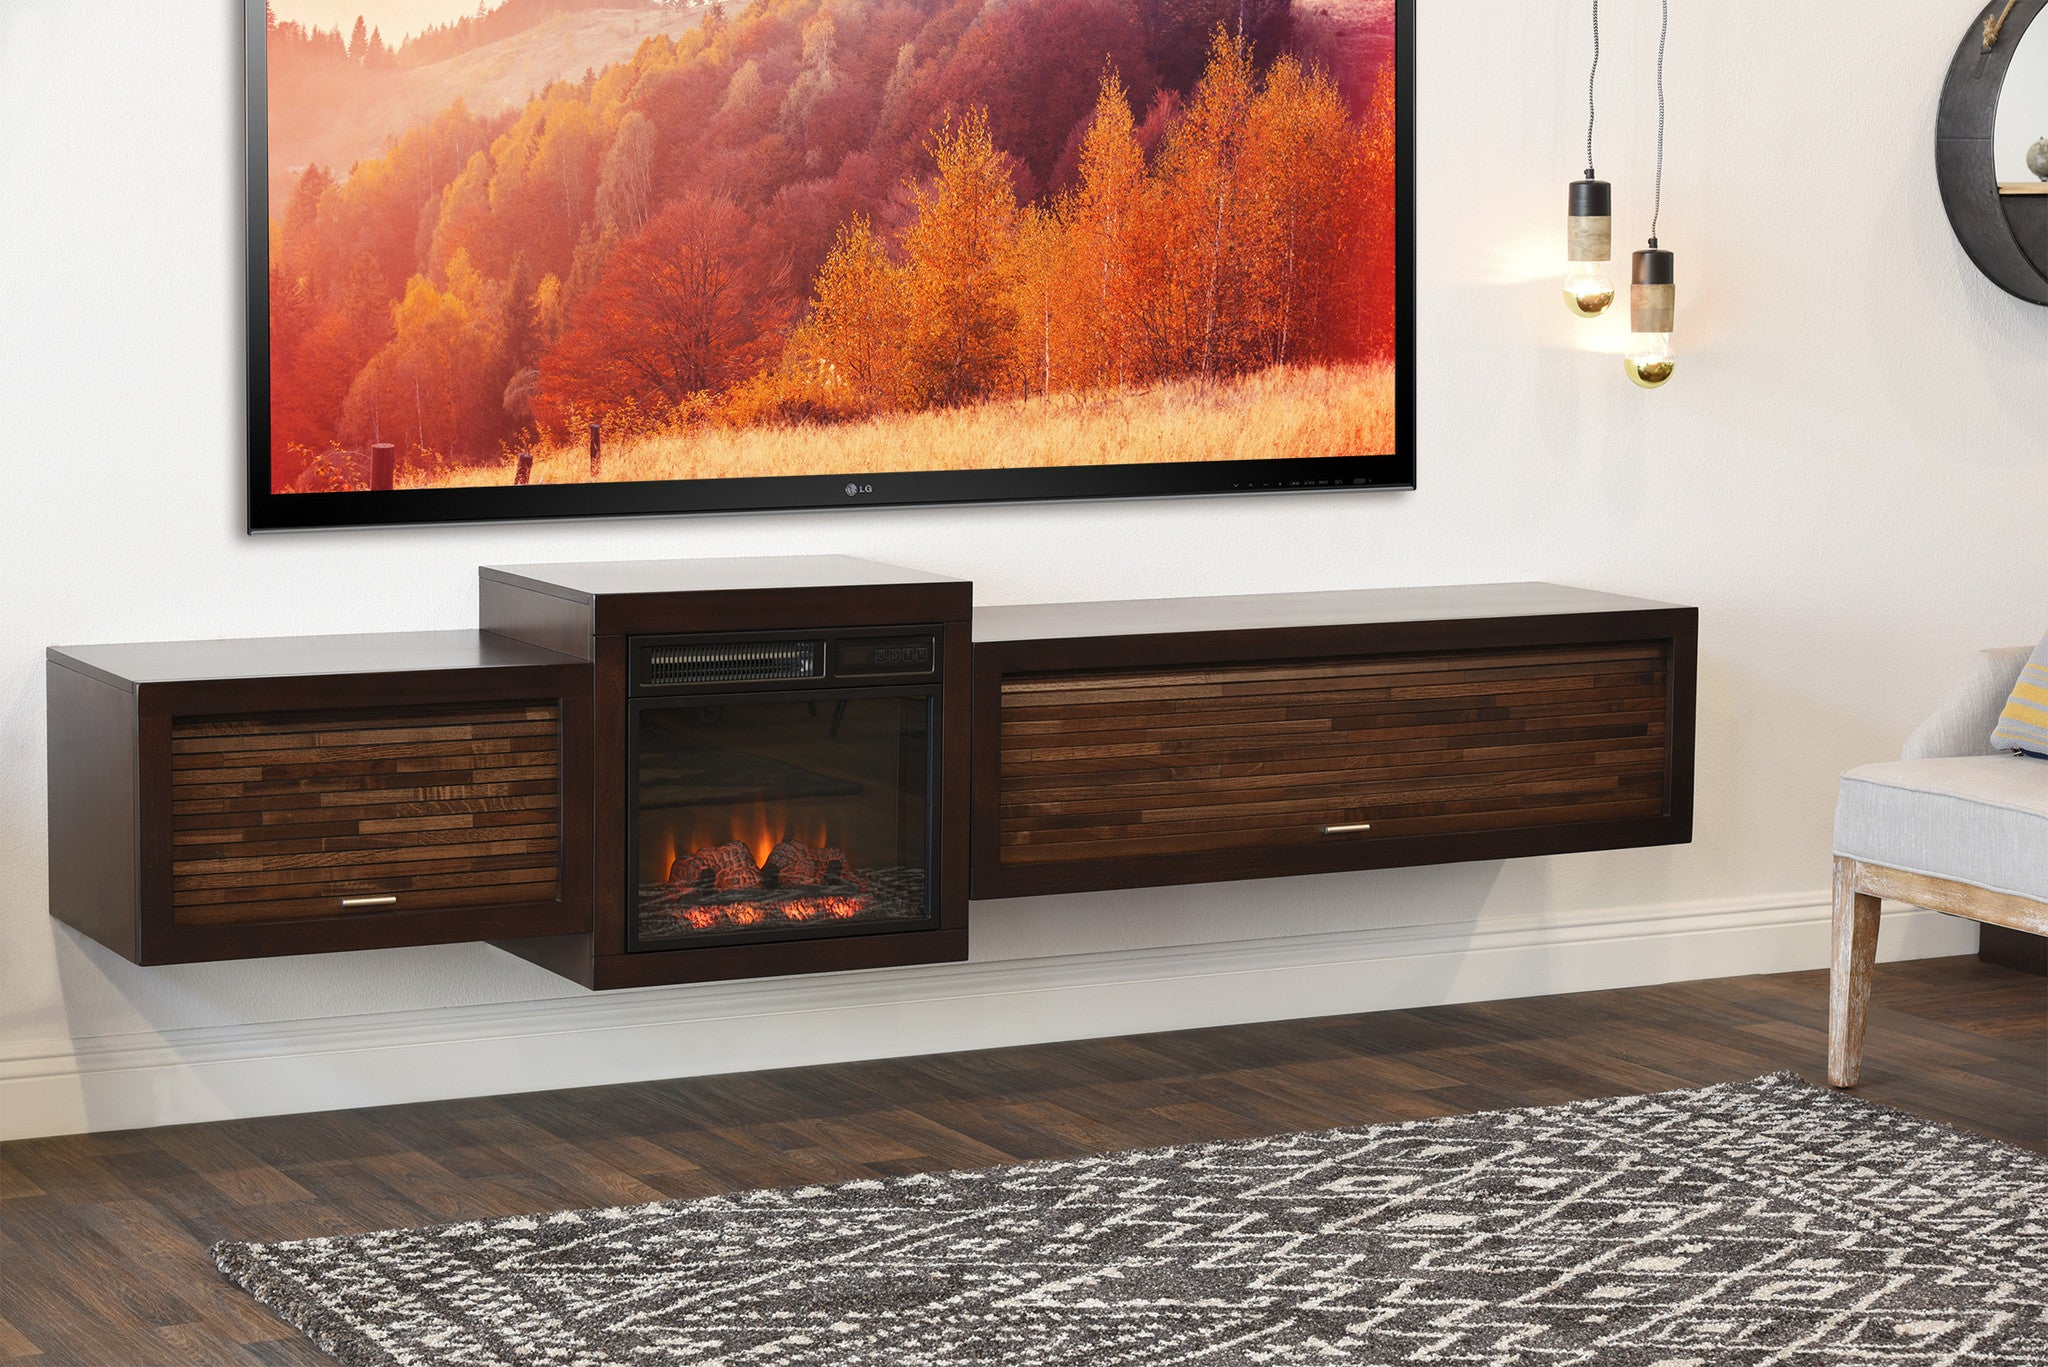 Save $$ With This Bundle! Floating TV Stand With Electric Fireplace   The Eco Geo is a unique eco-friendly modular entertainment console which is handcrafted of solid Poplar and genuine Maple veneers.   This bundle includes our electric fireplace and heating unit! The fireplace unit features a built in heater to crea